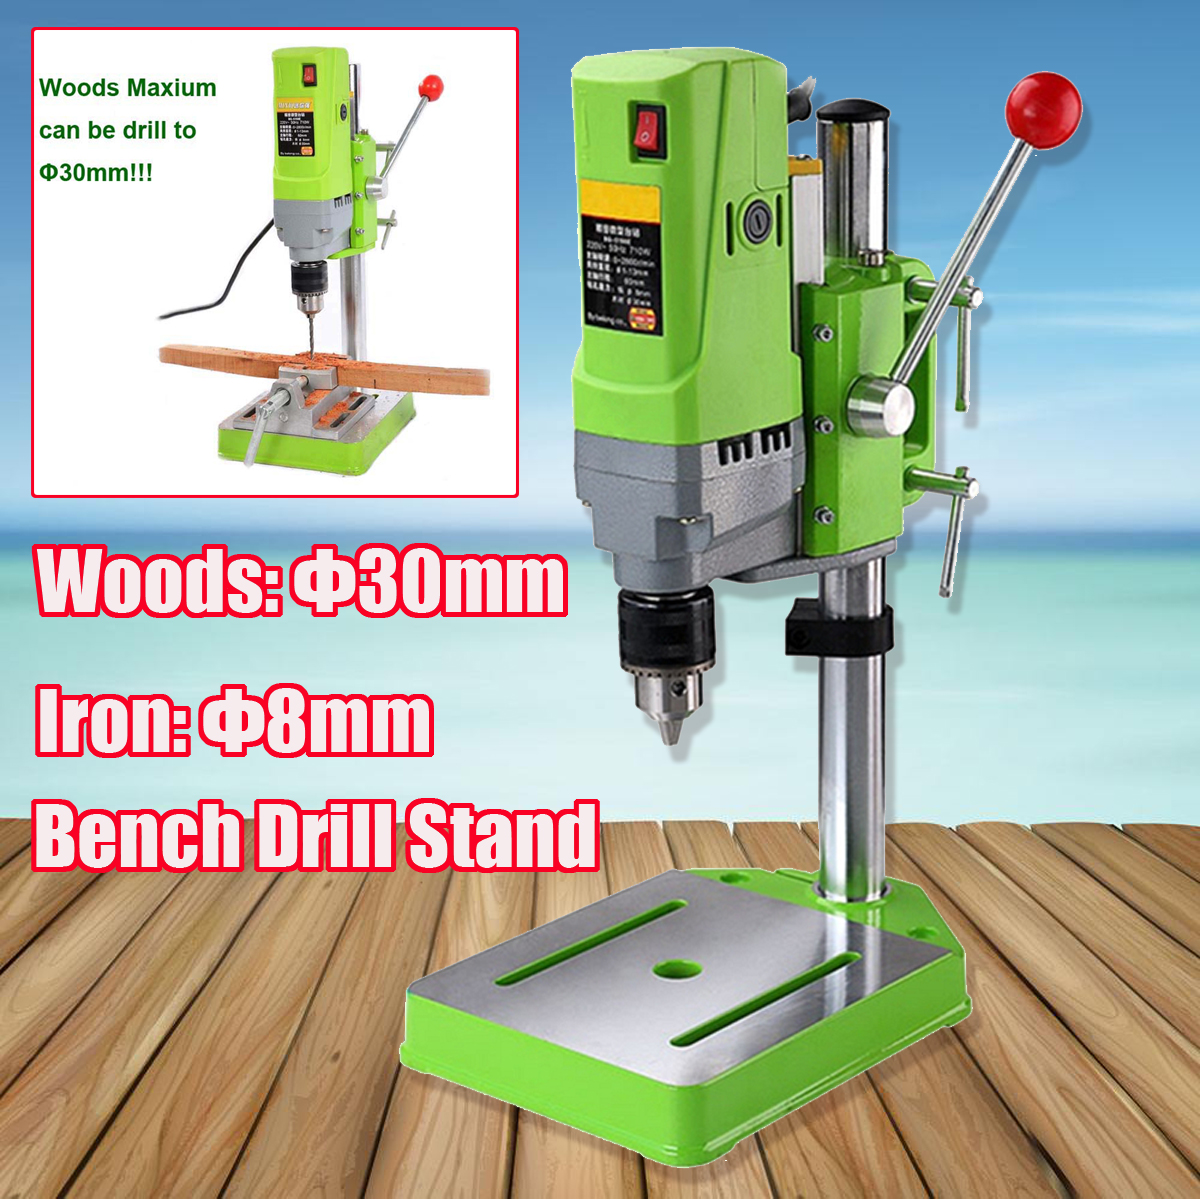 Mini Bench Drill Stand Machine BG-5156E 710W Electric Bench Drilling Variable Speed Drilling Chuck 1-13mm For DIY Wood Metal цена